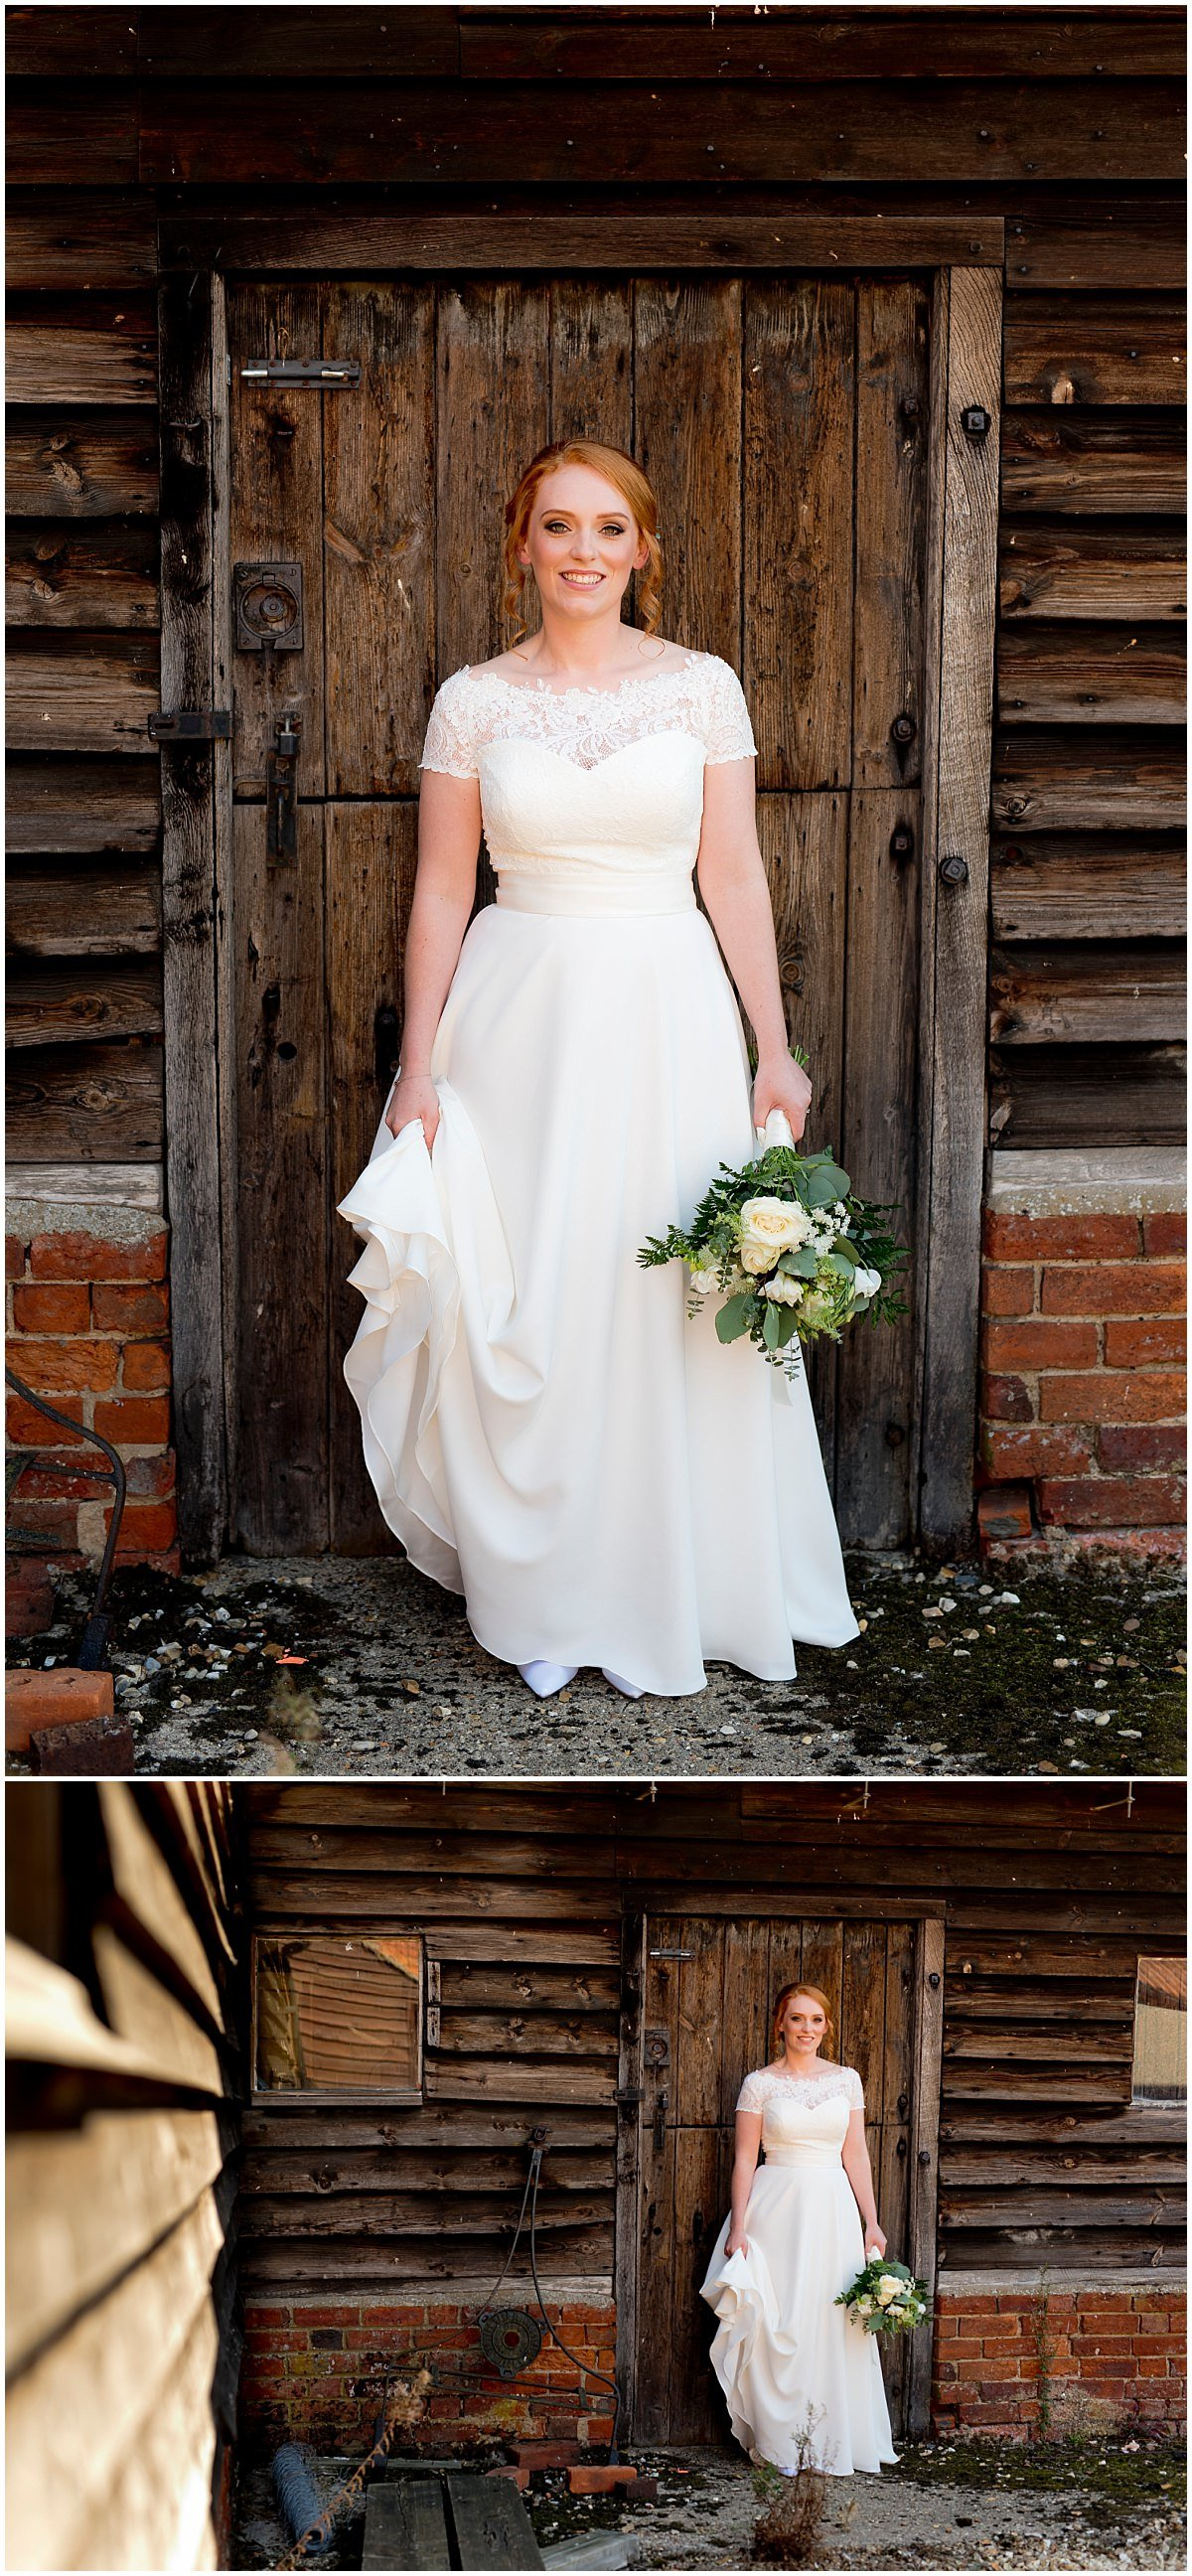 Bride at The Barns at Hunsbury Hill